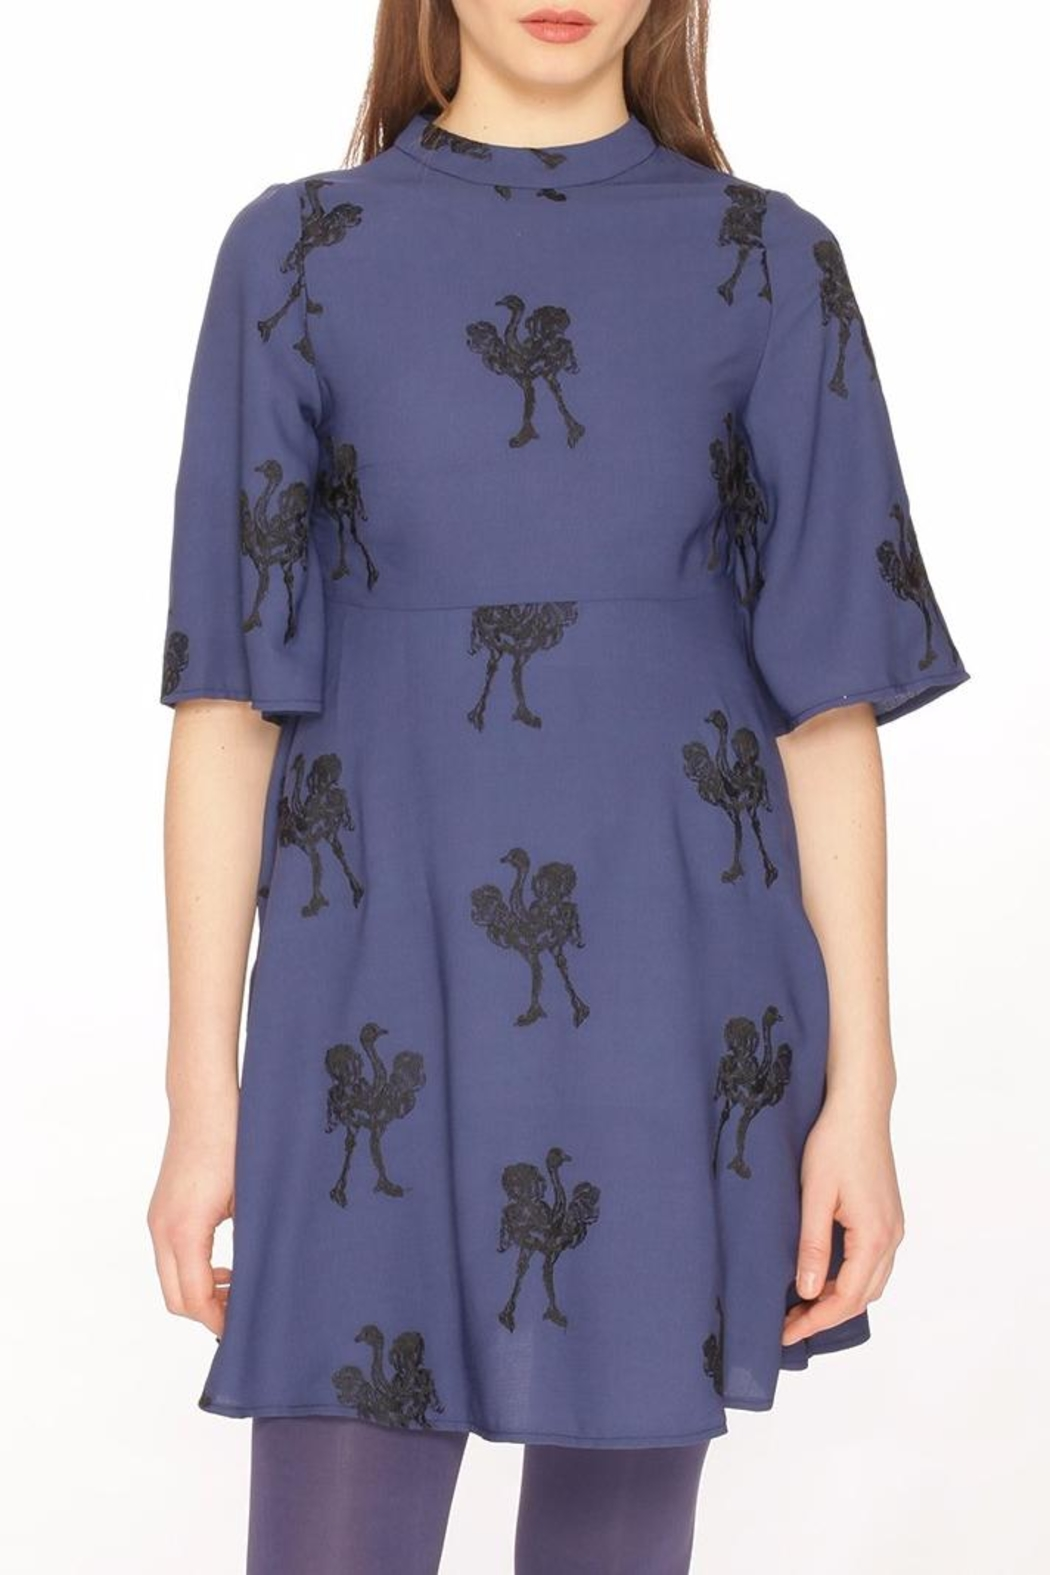 PepaLoves Embroidered Ostrich Dress - Main Image